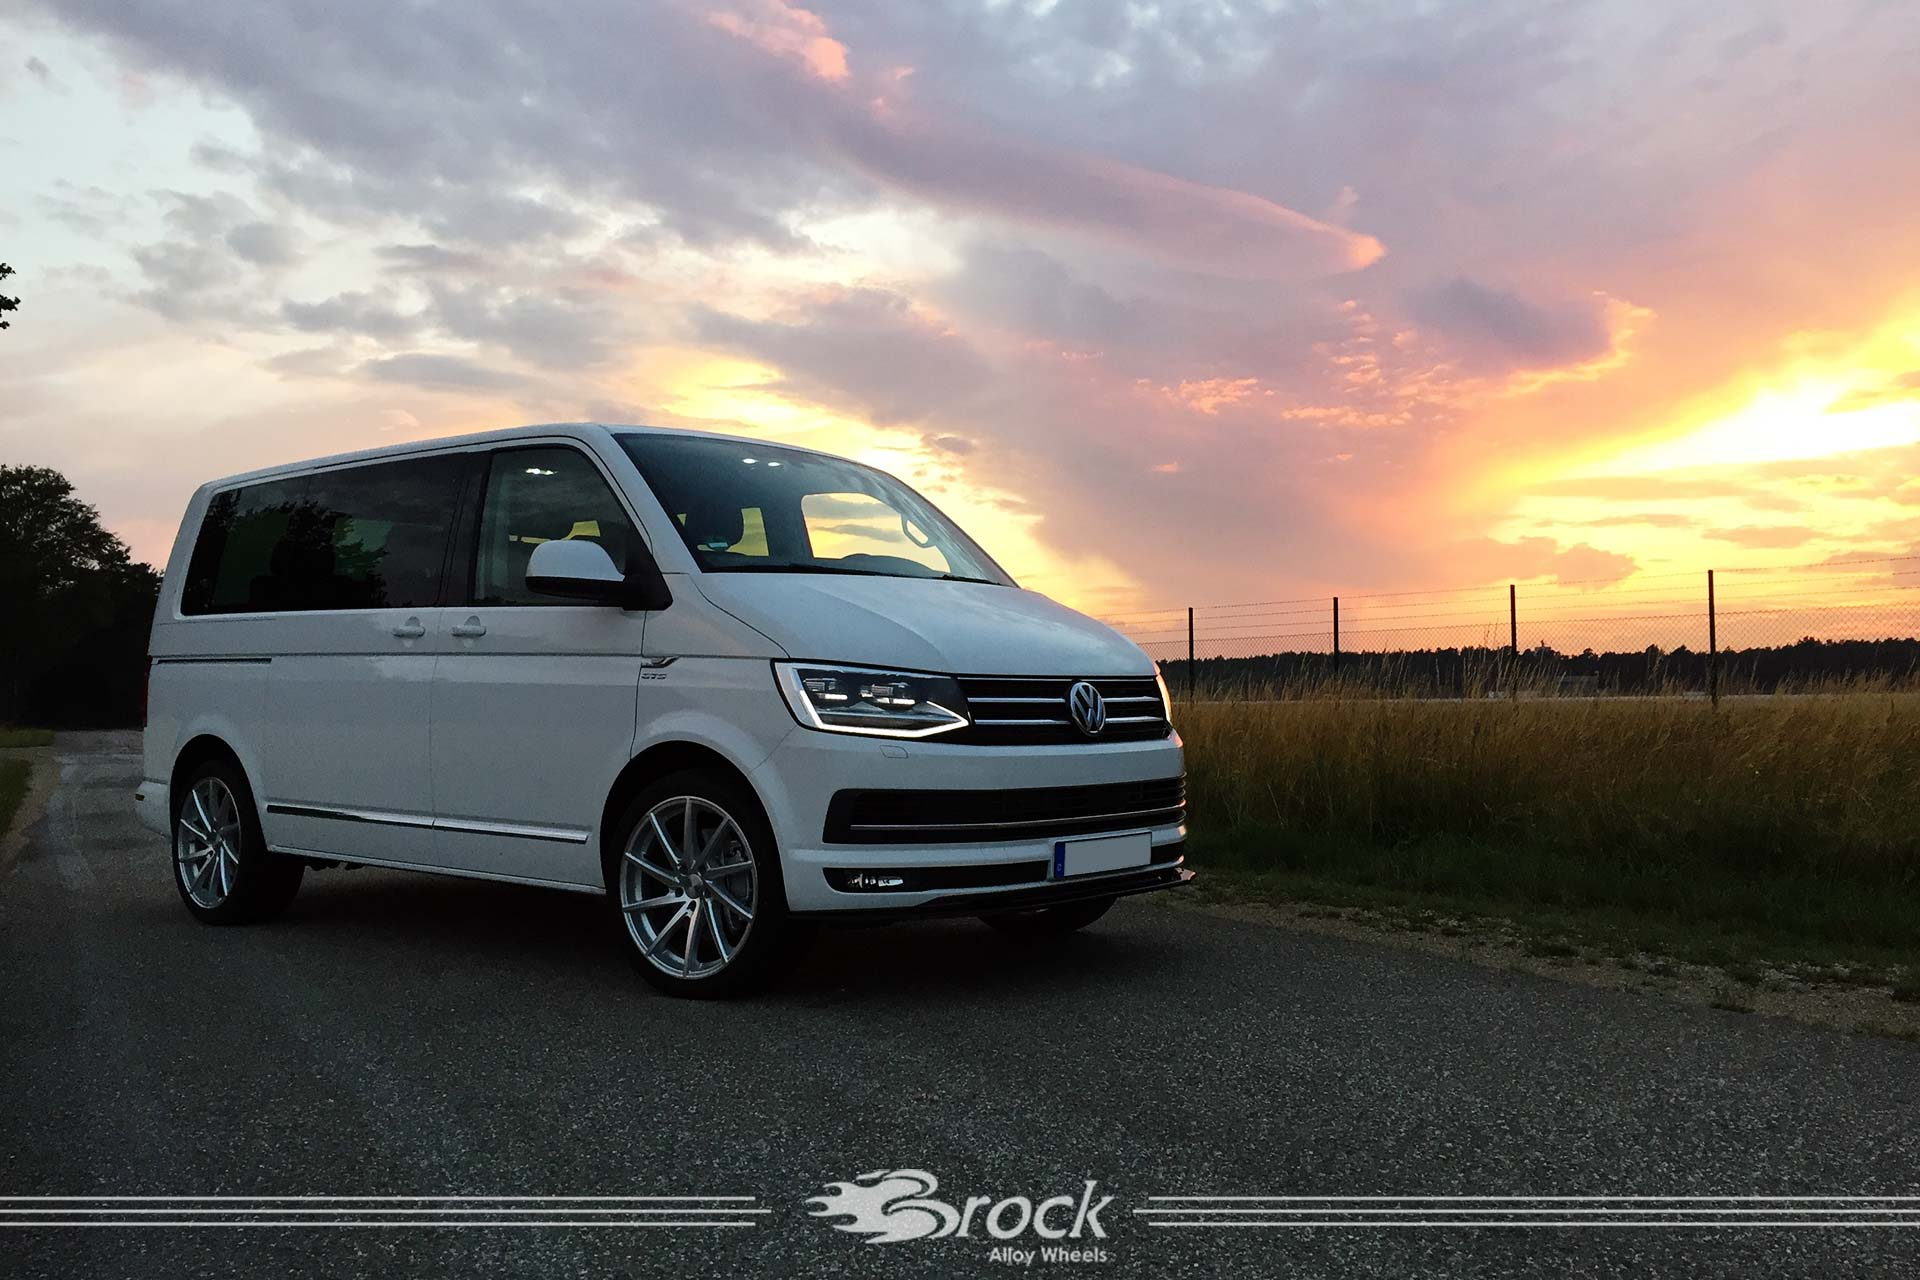 Vw T6 Brock B37 Ksvp Brock Alloy Wheels